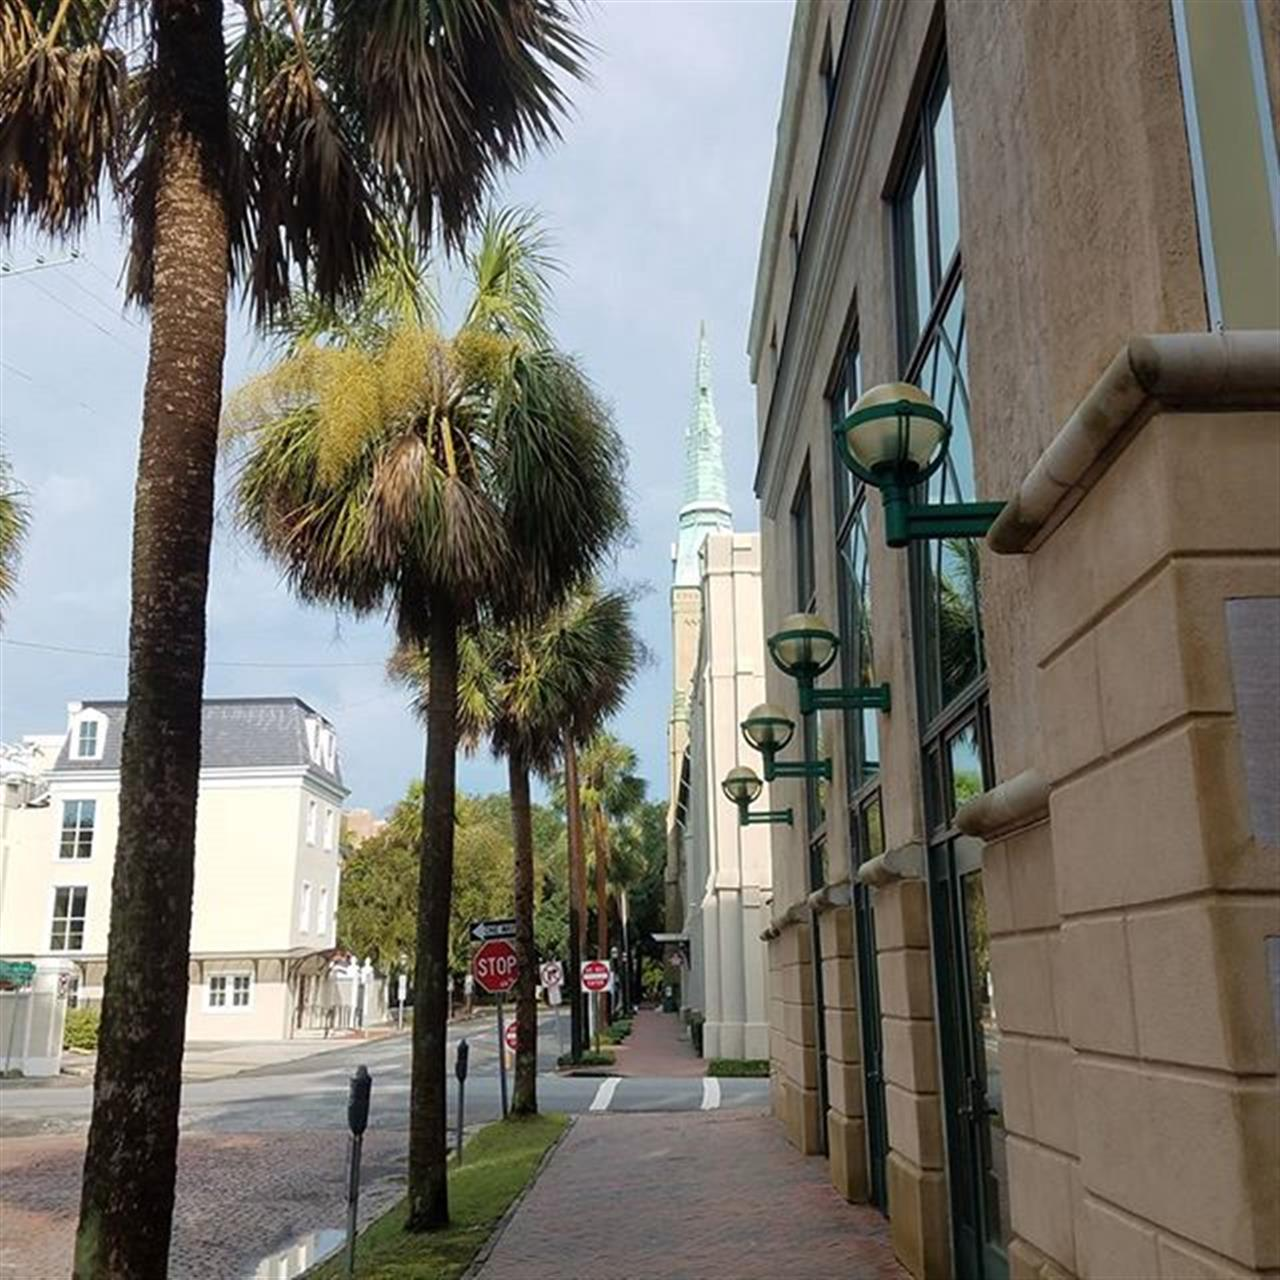 The calm after a storm. #visitsavannah #leadingrelocal